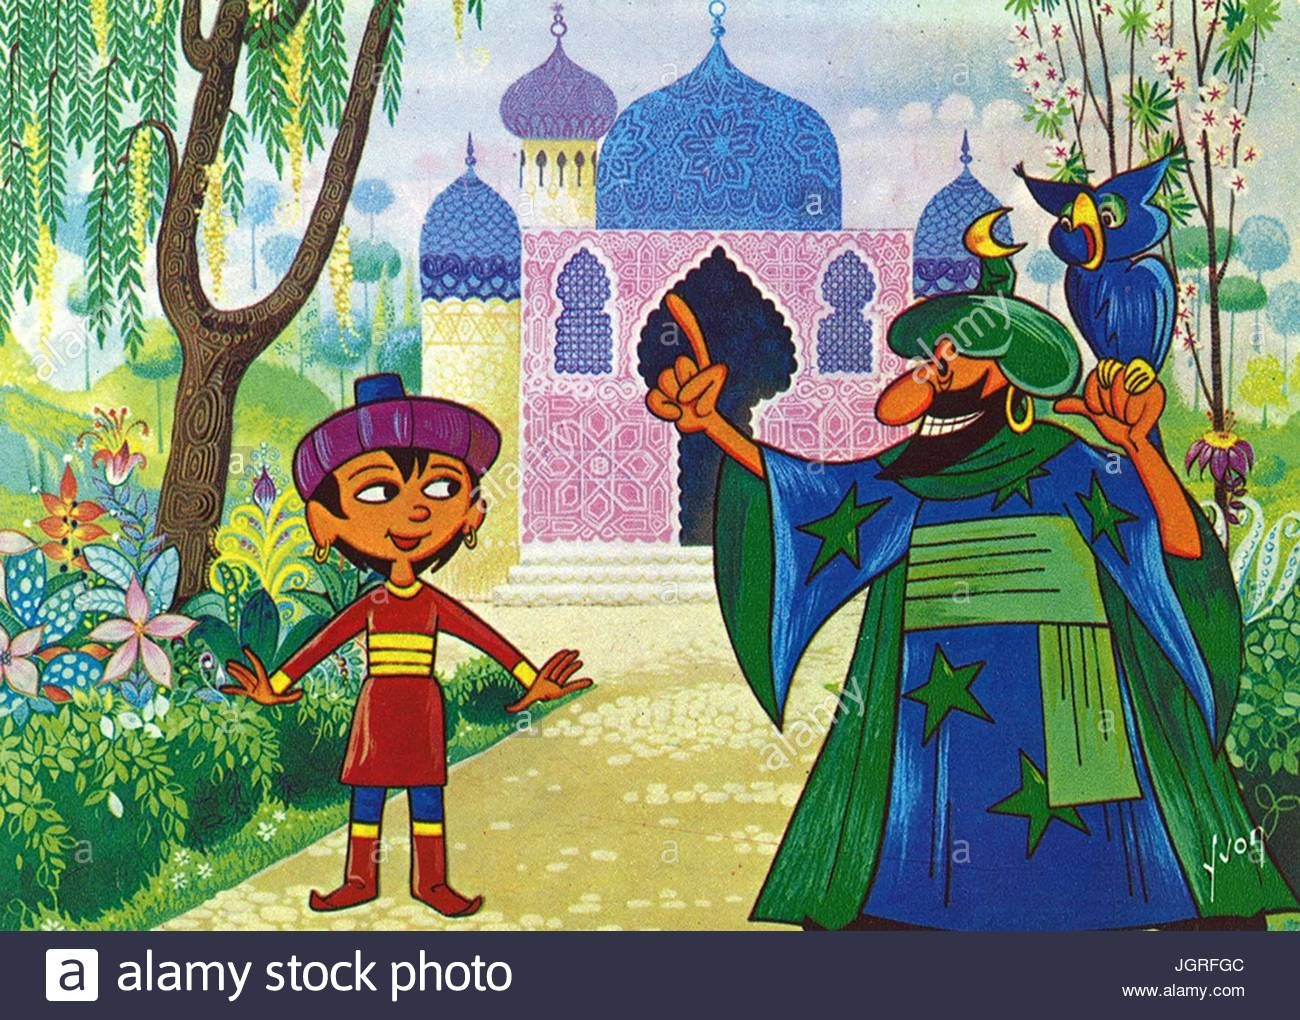 Aladin Et La Lampe Merveilleuse Year 1970 France Director Jean Stock Photo Royalty Free Image 148034556 Alamy Fairy Tales Painting Art